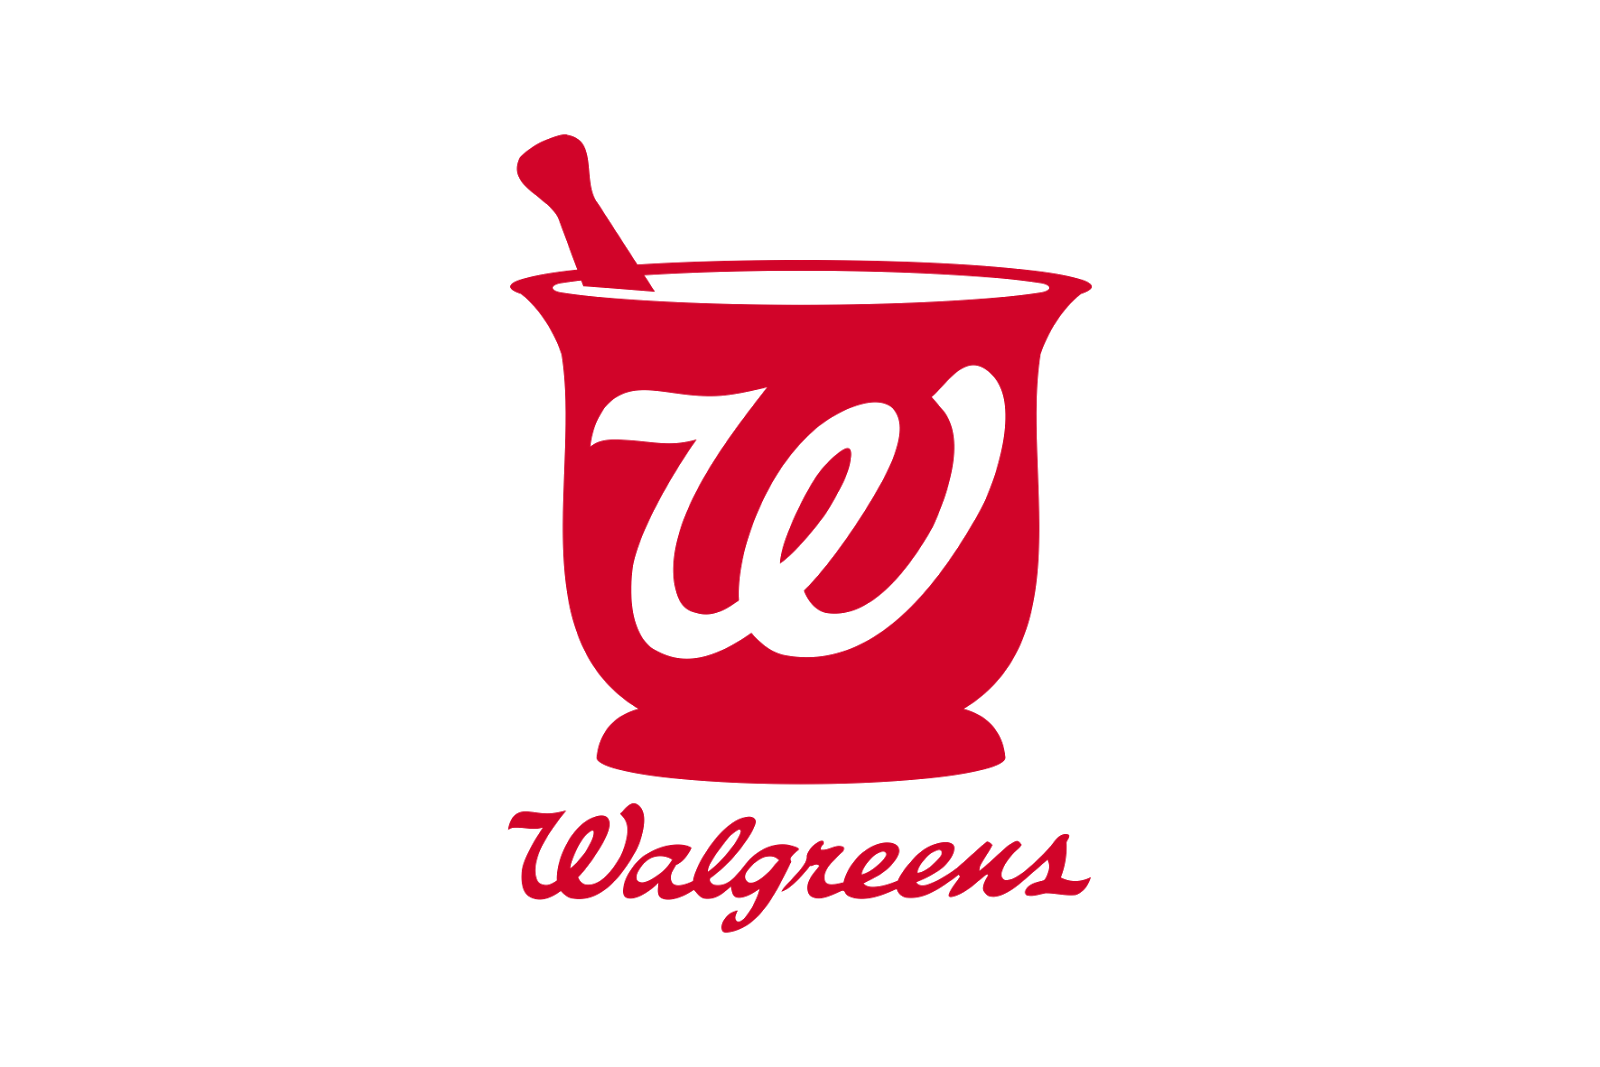 what does the walgreens logo mean